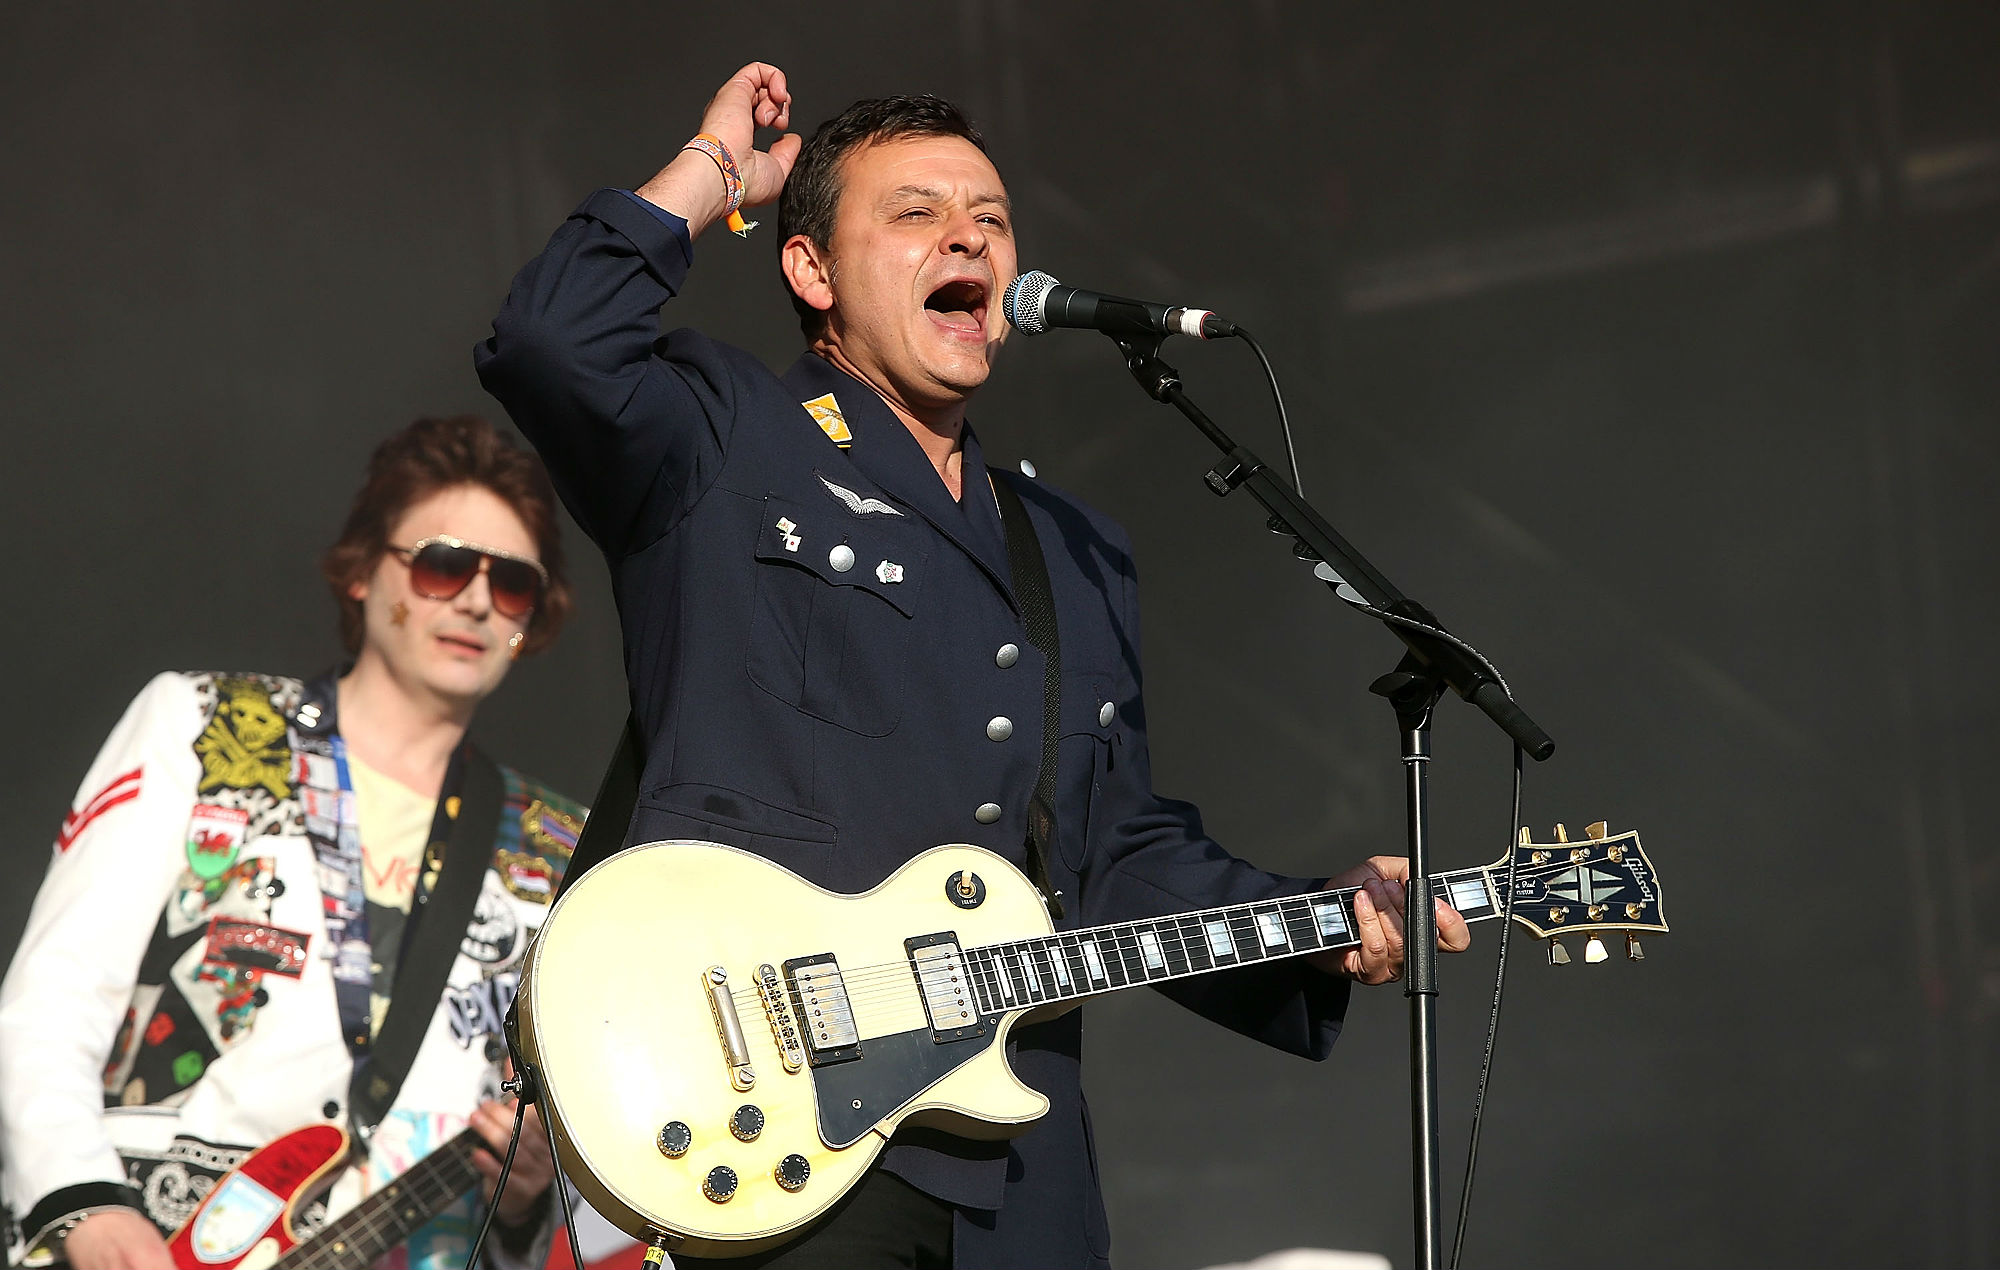 Manic Street Preachers performs on Day 2 of the Glastonbury Festival at Worthy Farm on June 28, 2014 in Glastonbury, England. (Photo by Danny Martindale/WireImage)